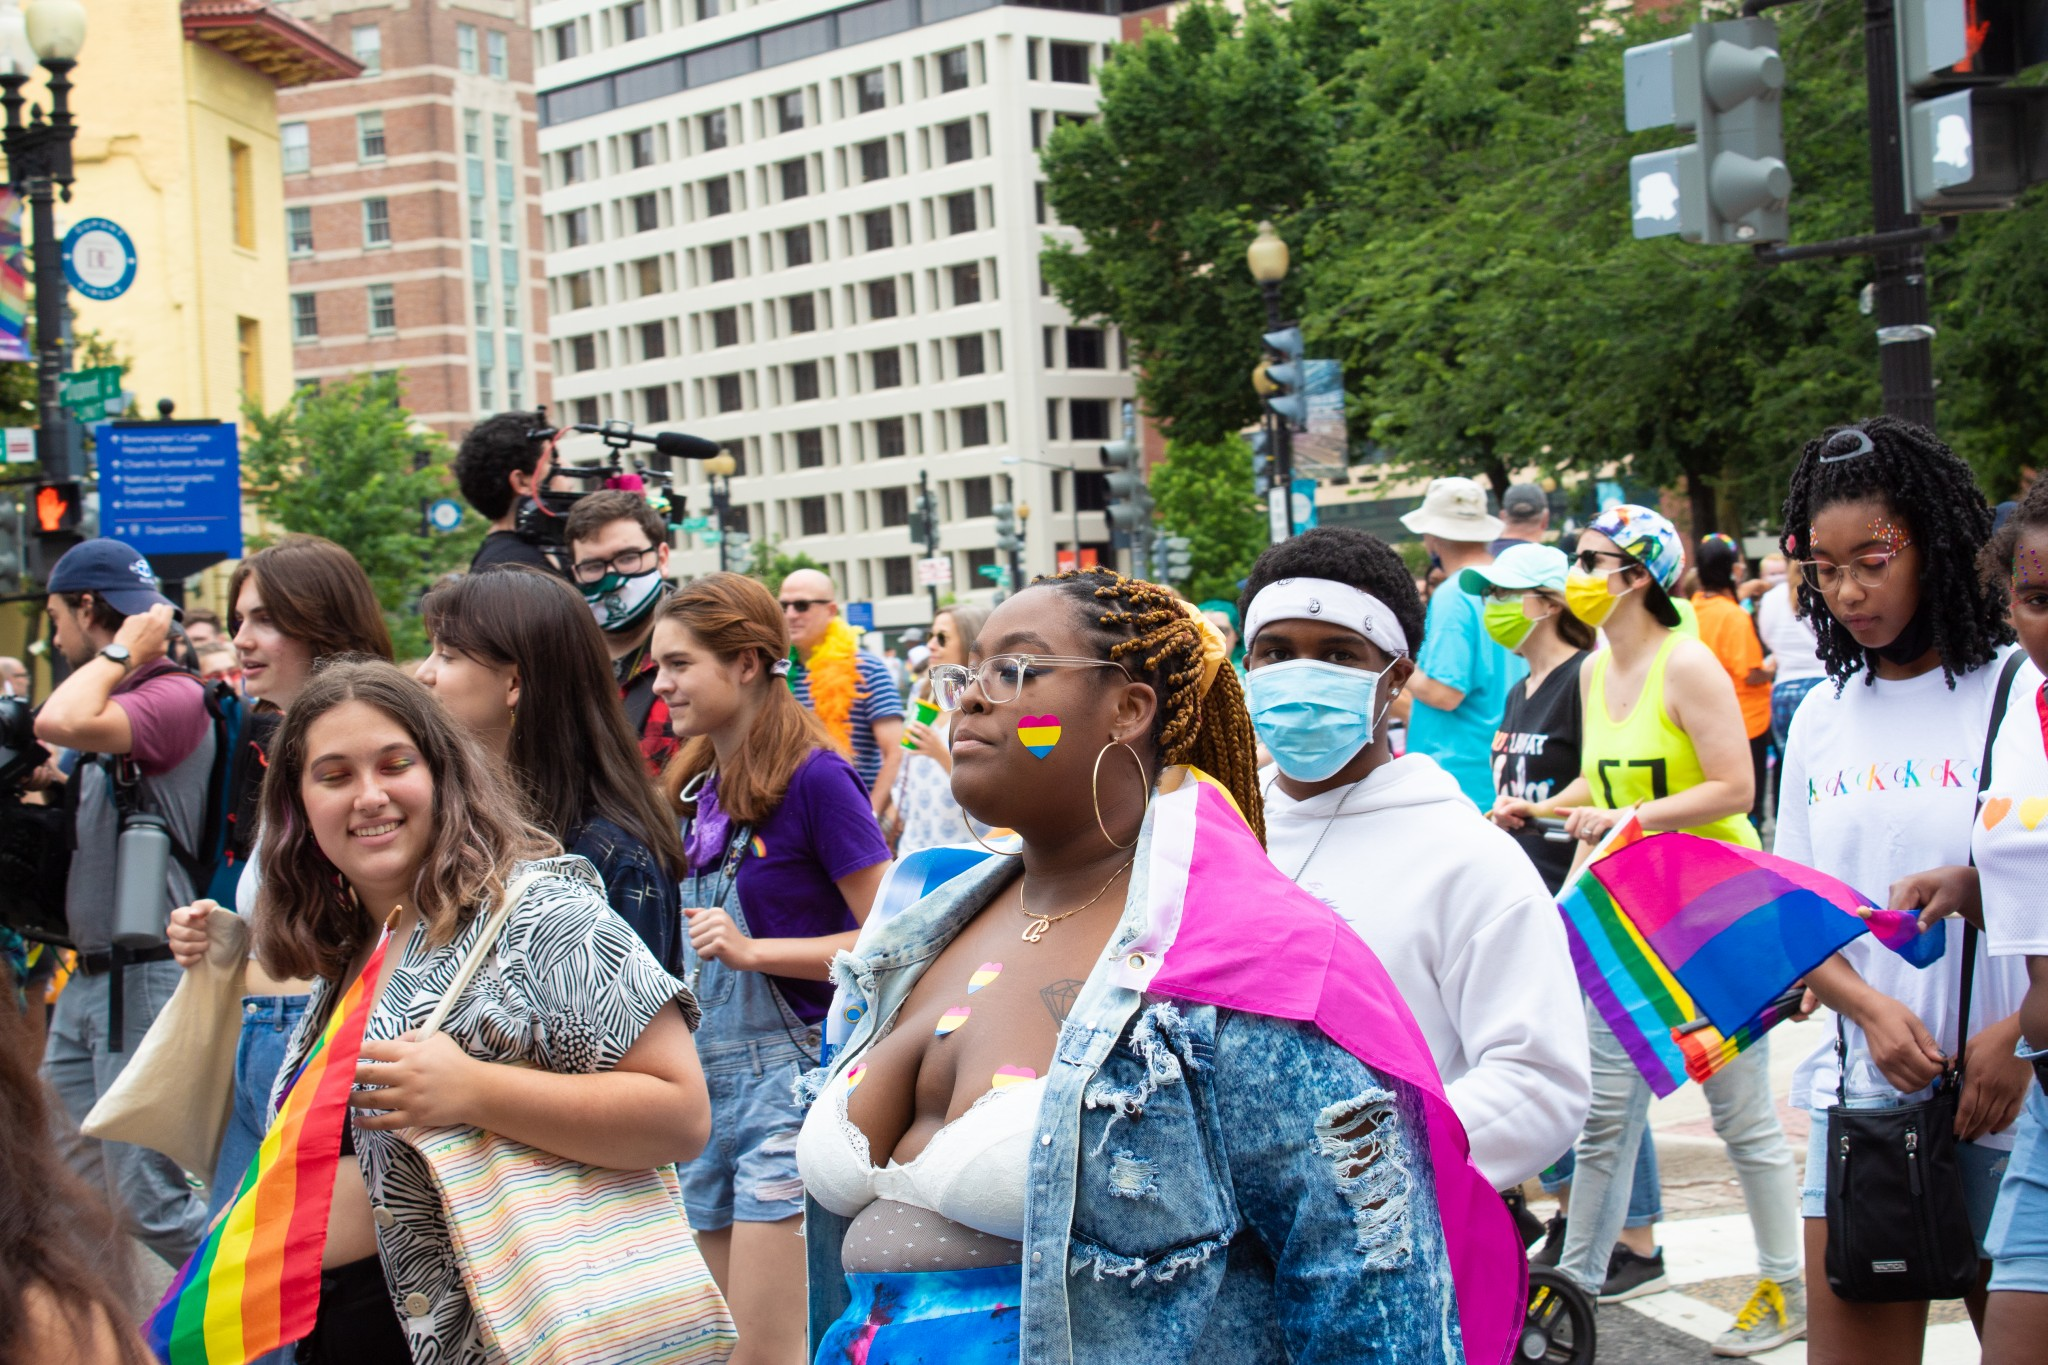 A woman is decked out in stickers with pansexual pride colors at Capital Pride on June 12, 2021 (The American Spectator)